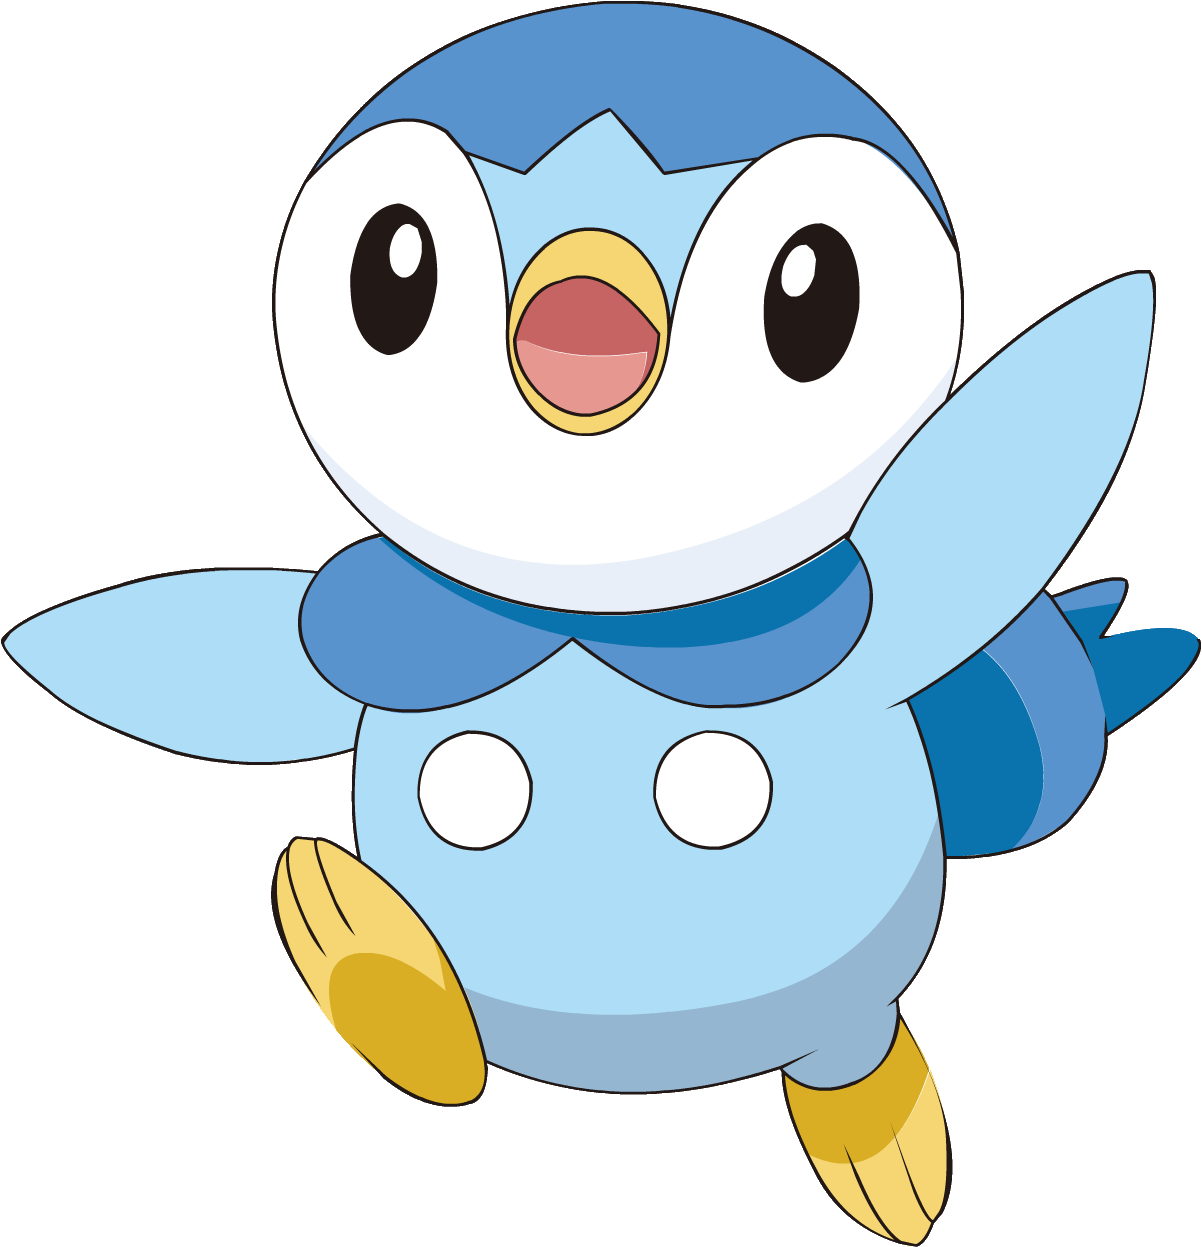 Piplup drawing anime